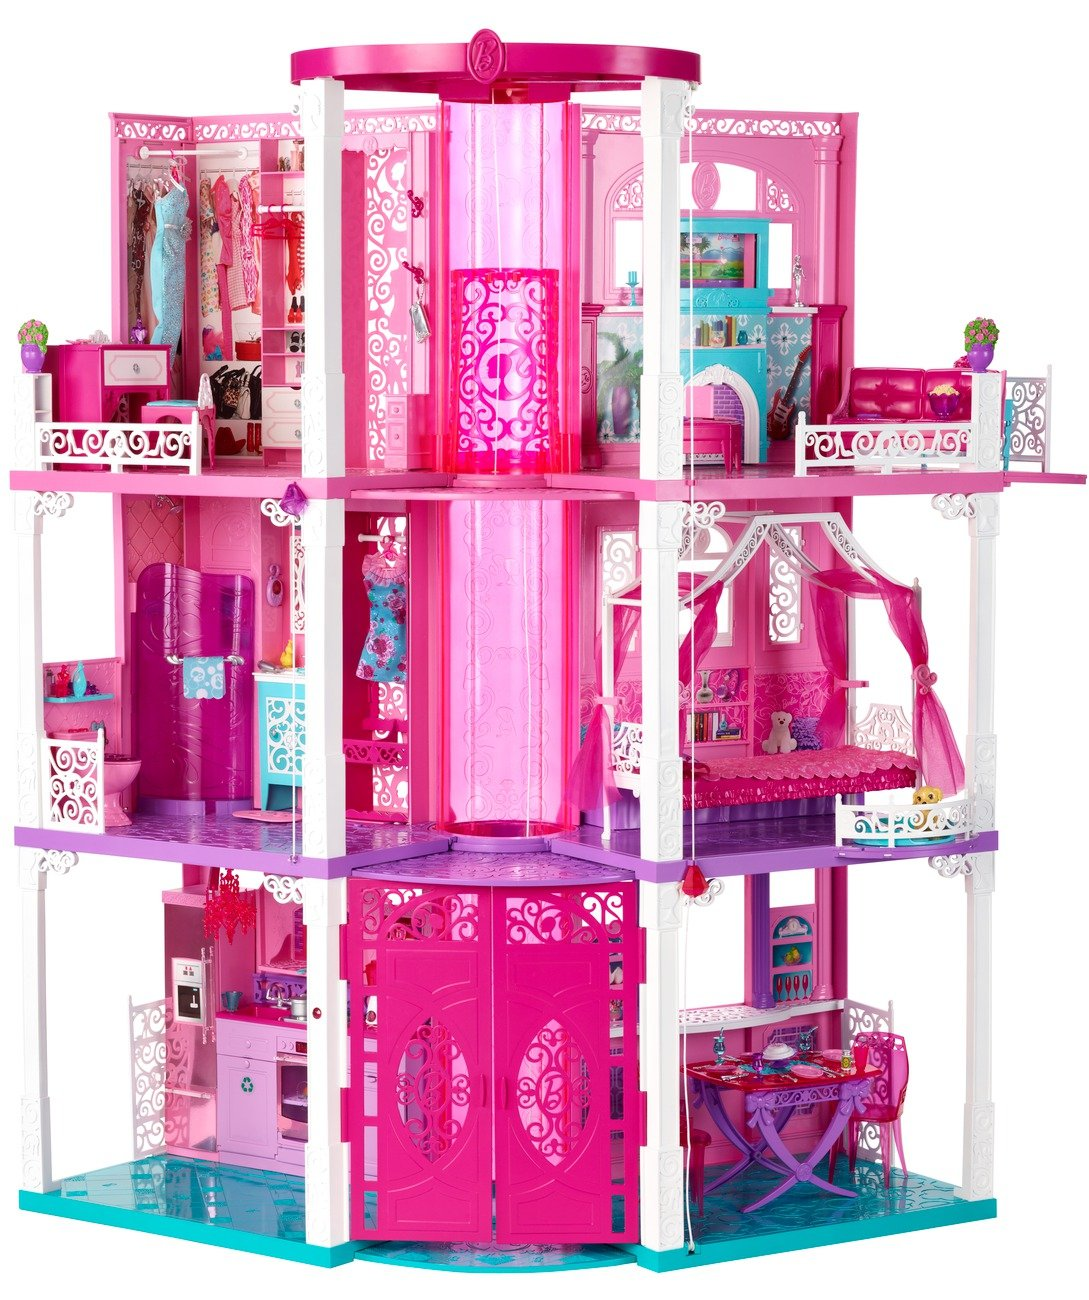 81kC9fRfVrL._SL1300_ amazon com barbie dream house (discontinued by manufacturer Barbie Dreamhouse at bayanpartner.co